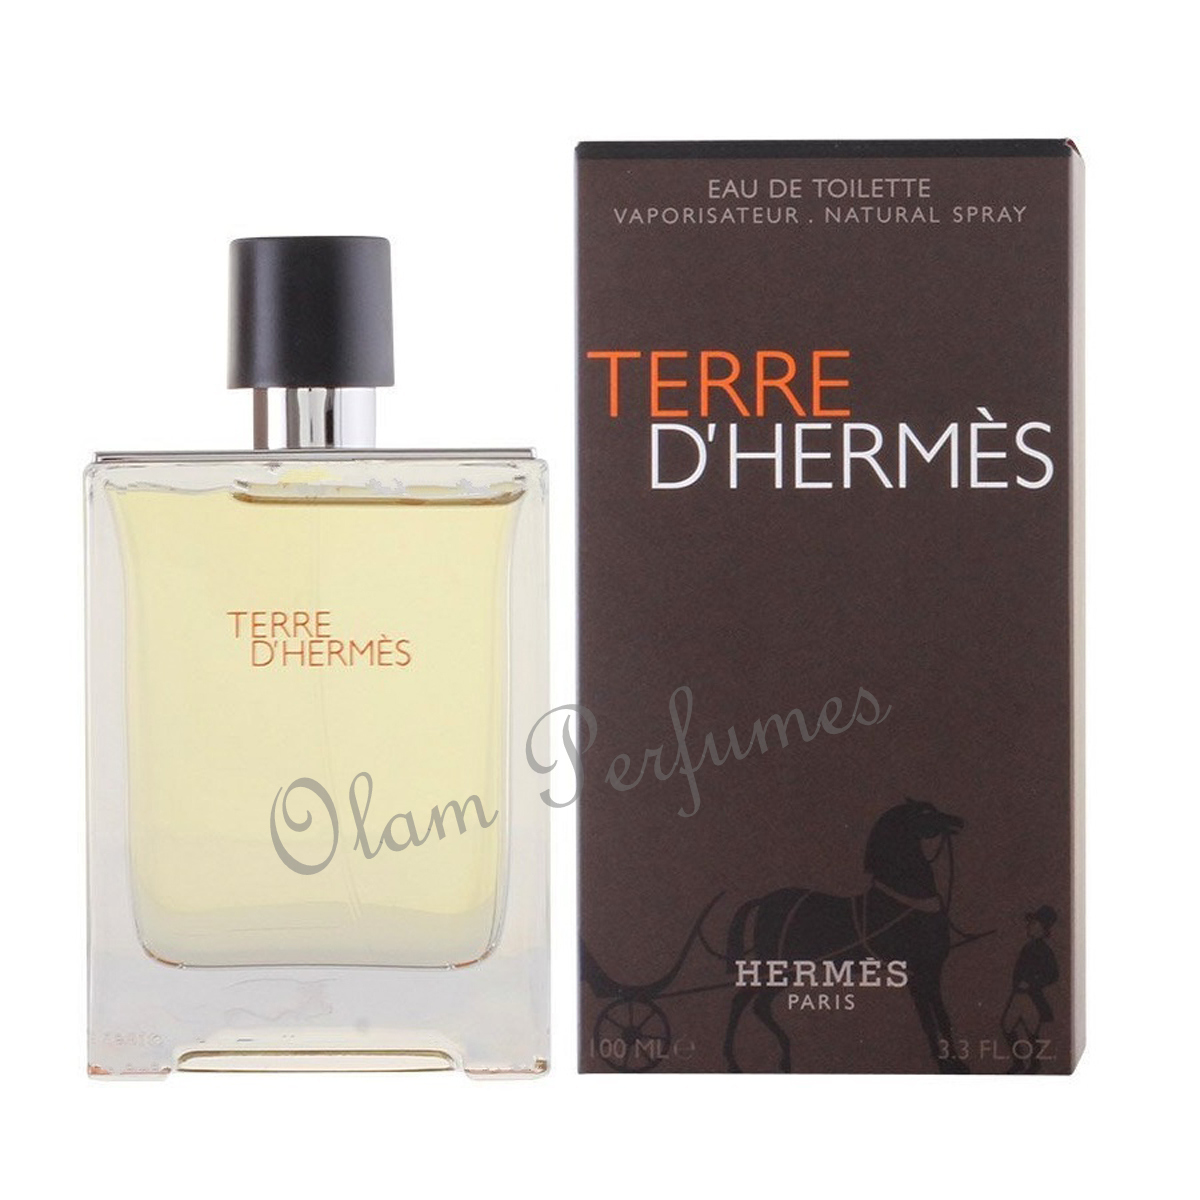 Hermes Terre D'Hermes Eau de Toilette Spray 3.3oz 100ml